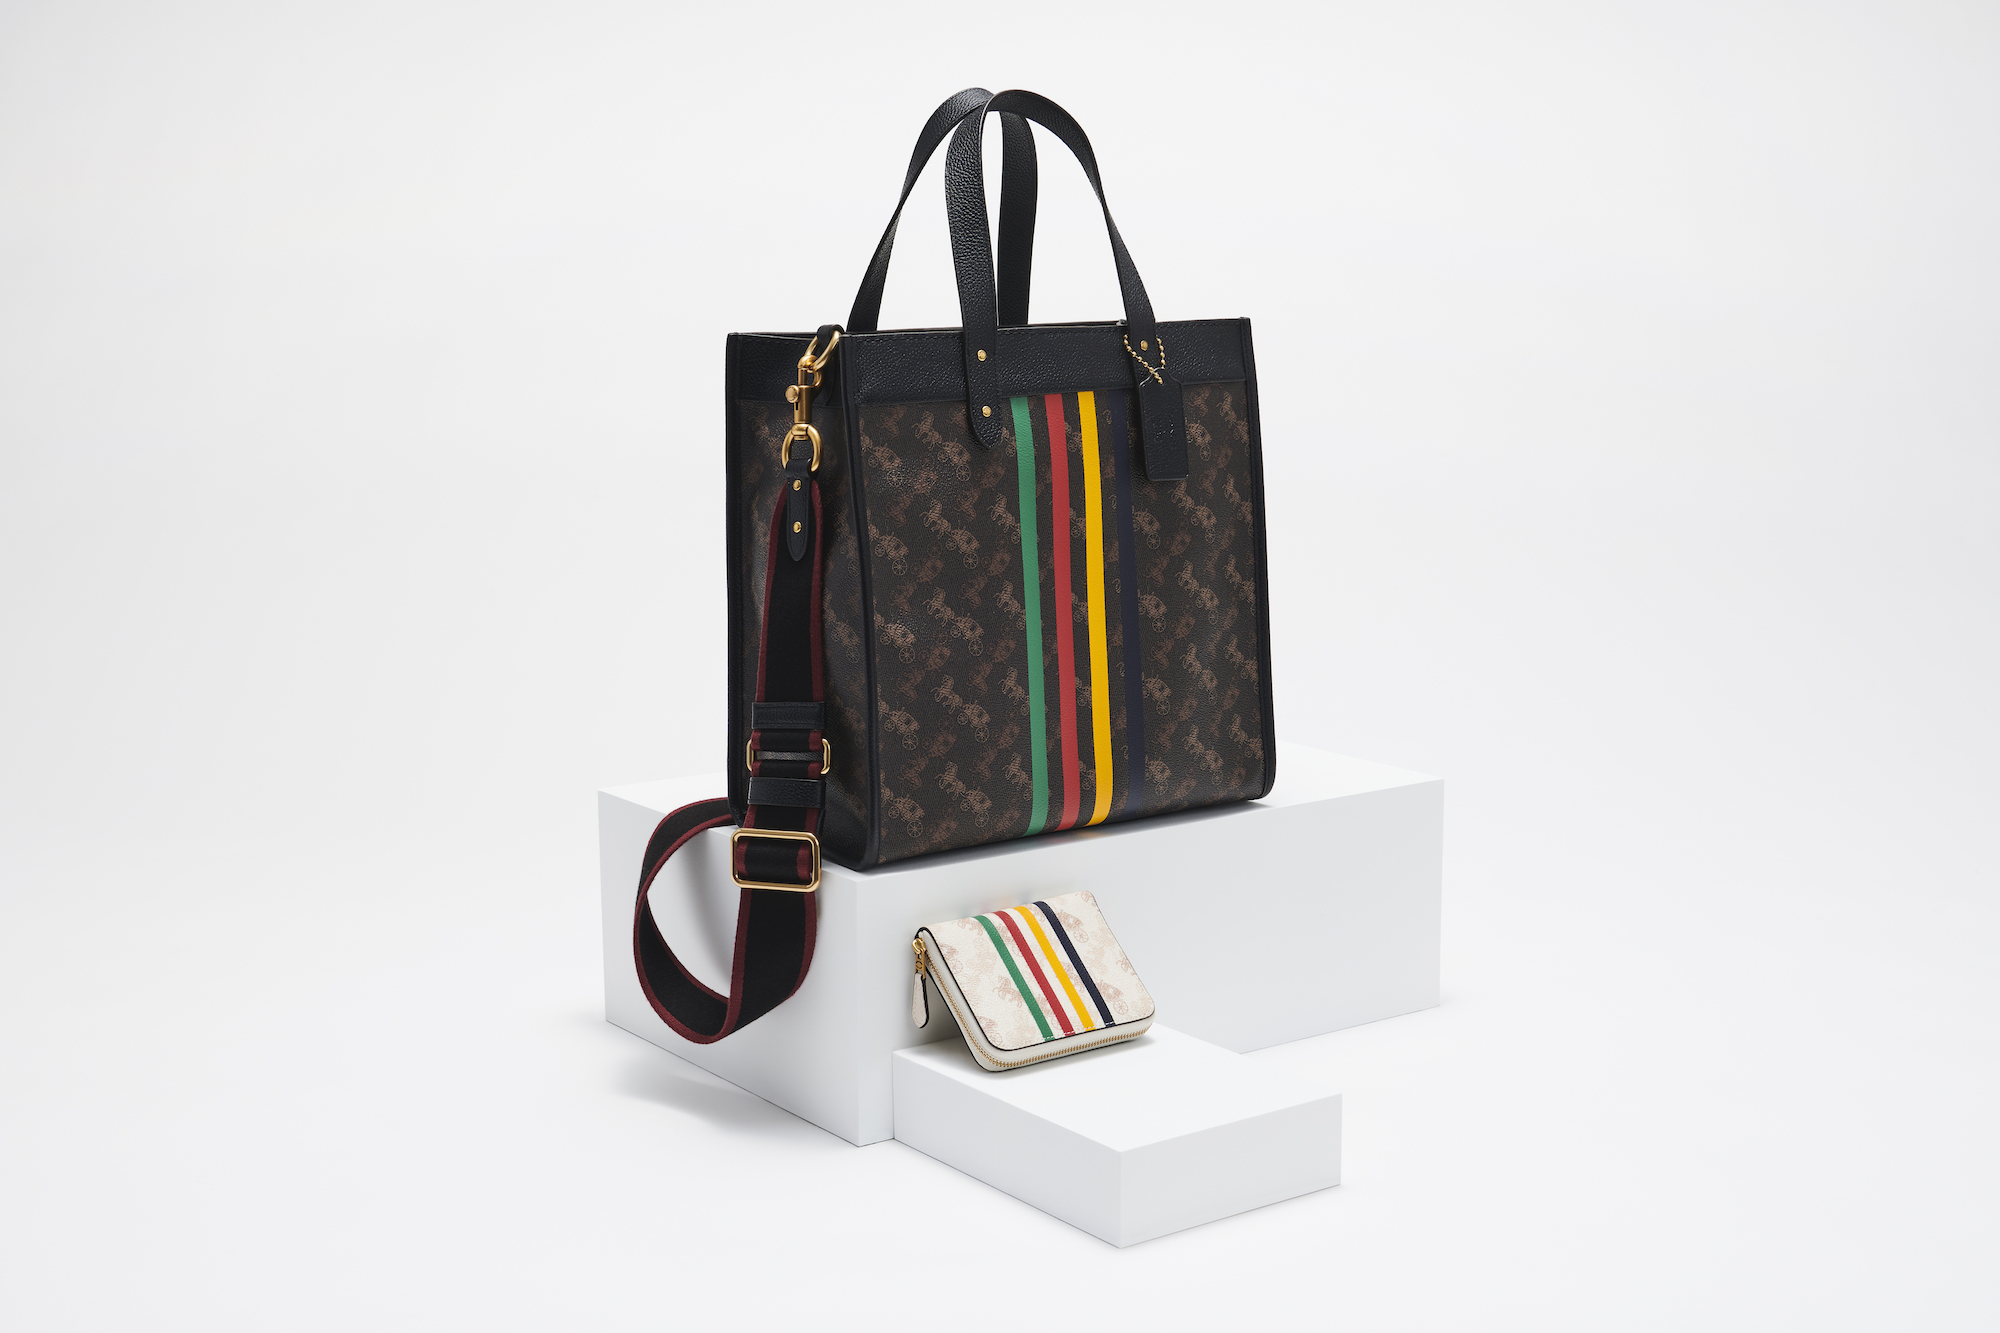 Hudson's Bay and Coach announce collaboration